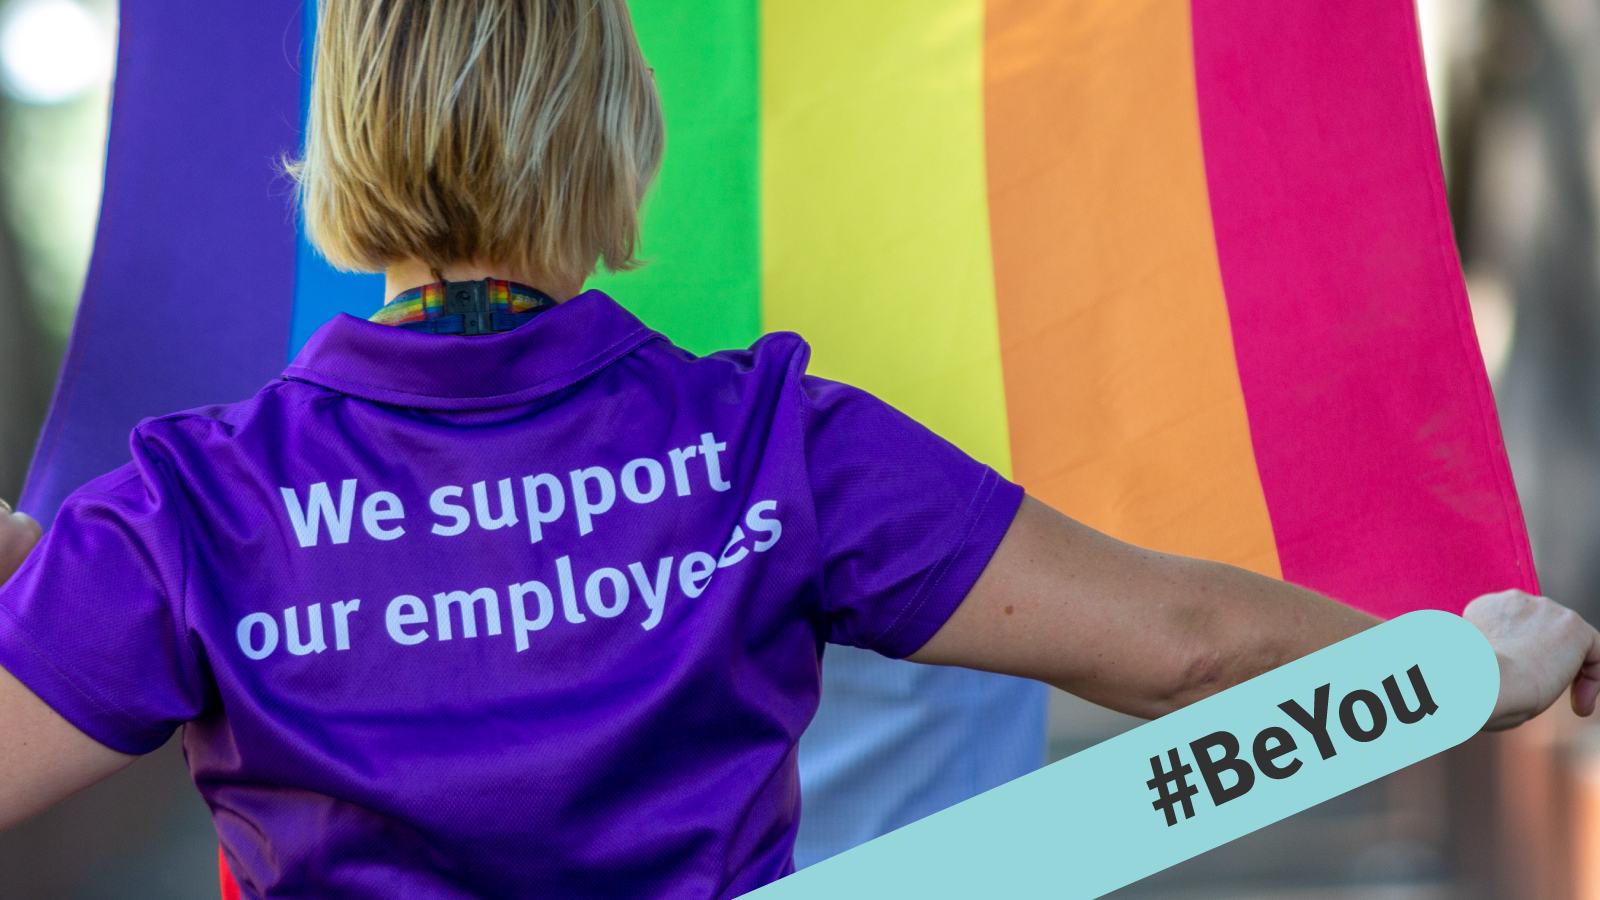 We support LGBTIQ+ employees